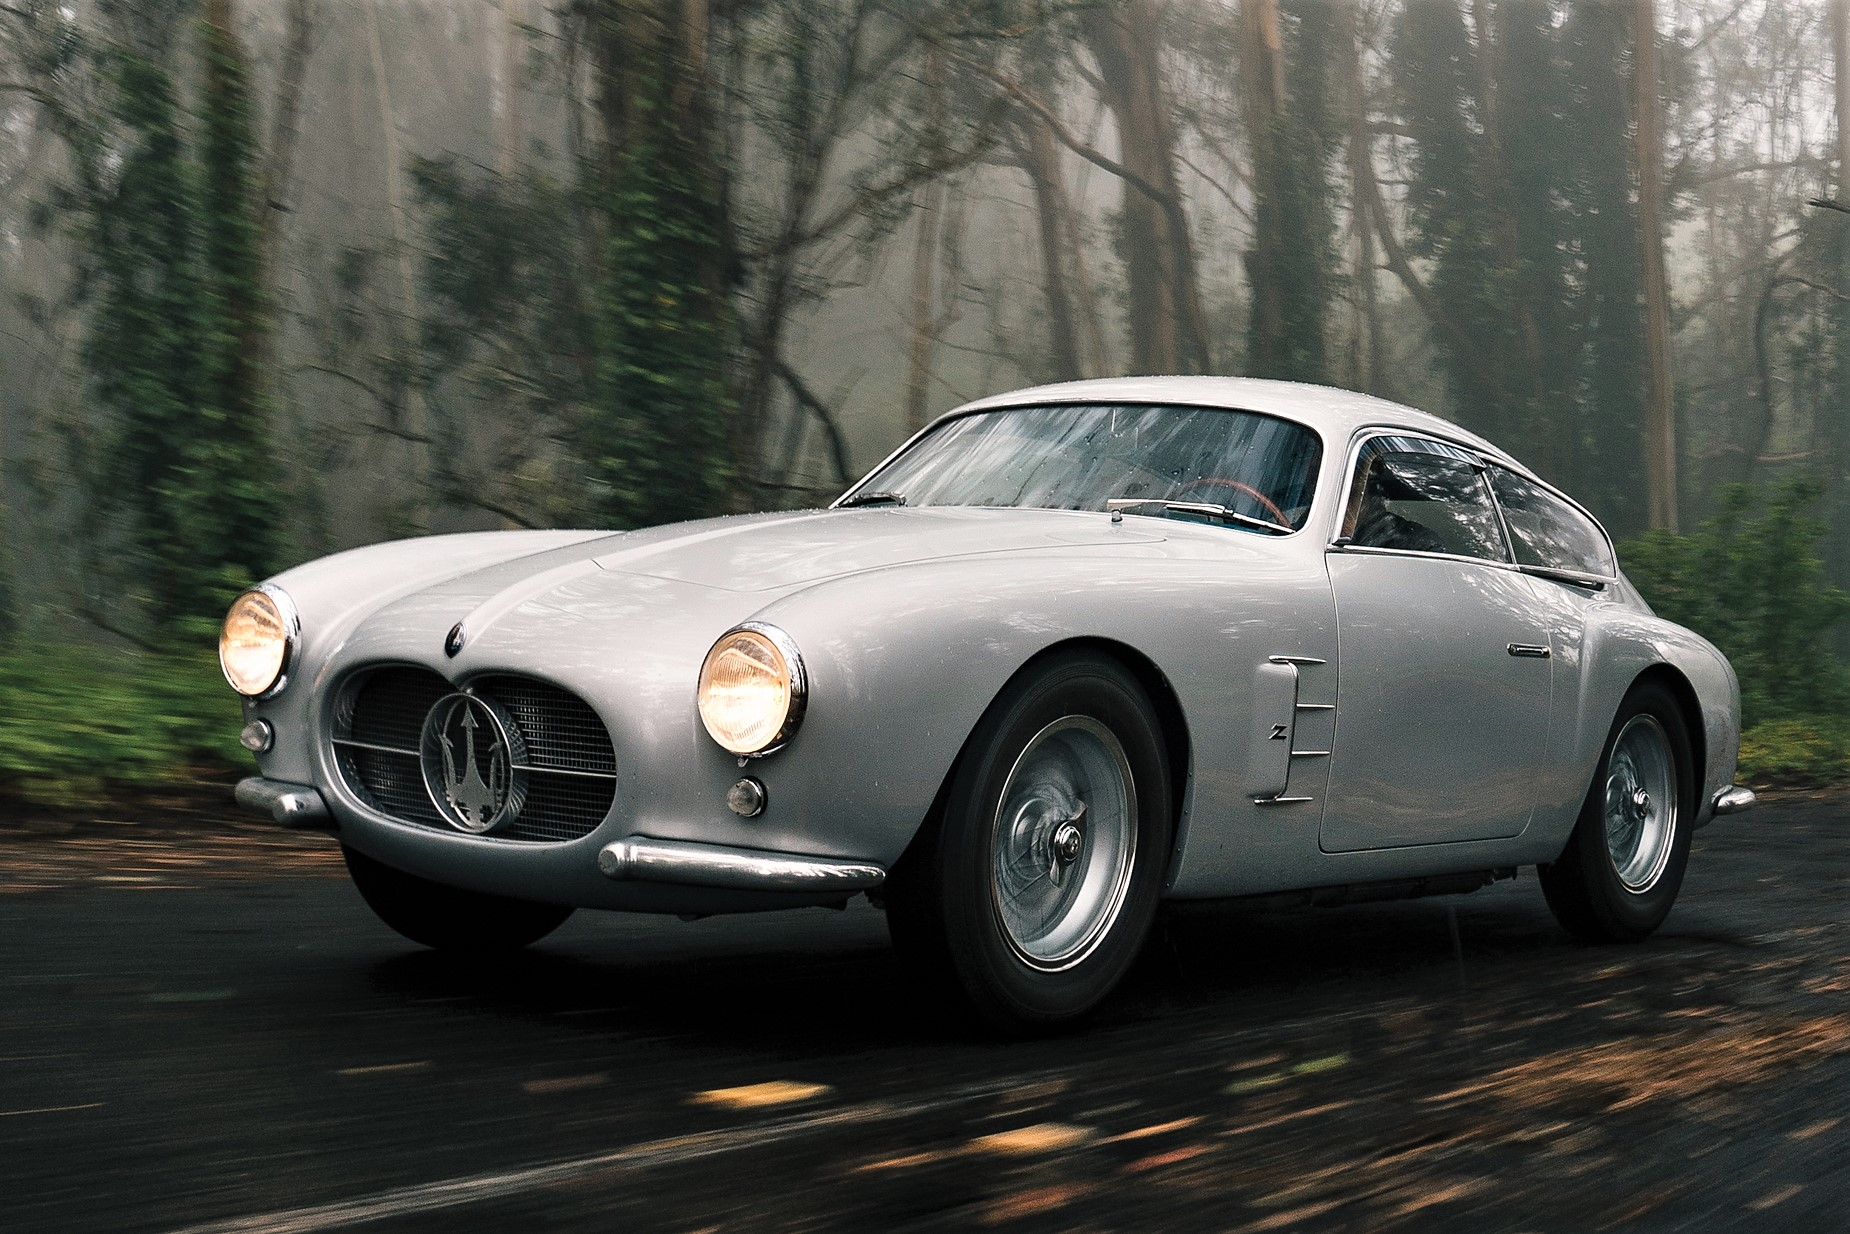 The Maserati wears an aerodynamic alloy body by Zagato | RM Sotheby's photos